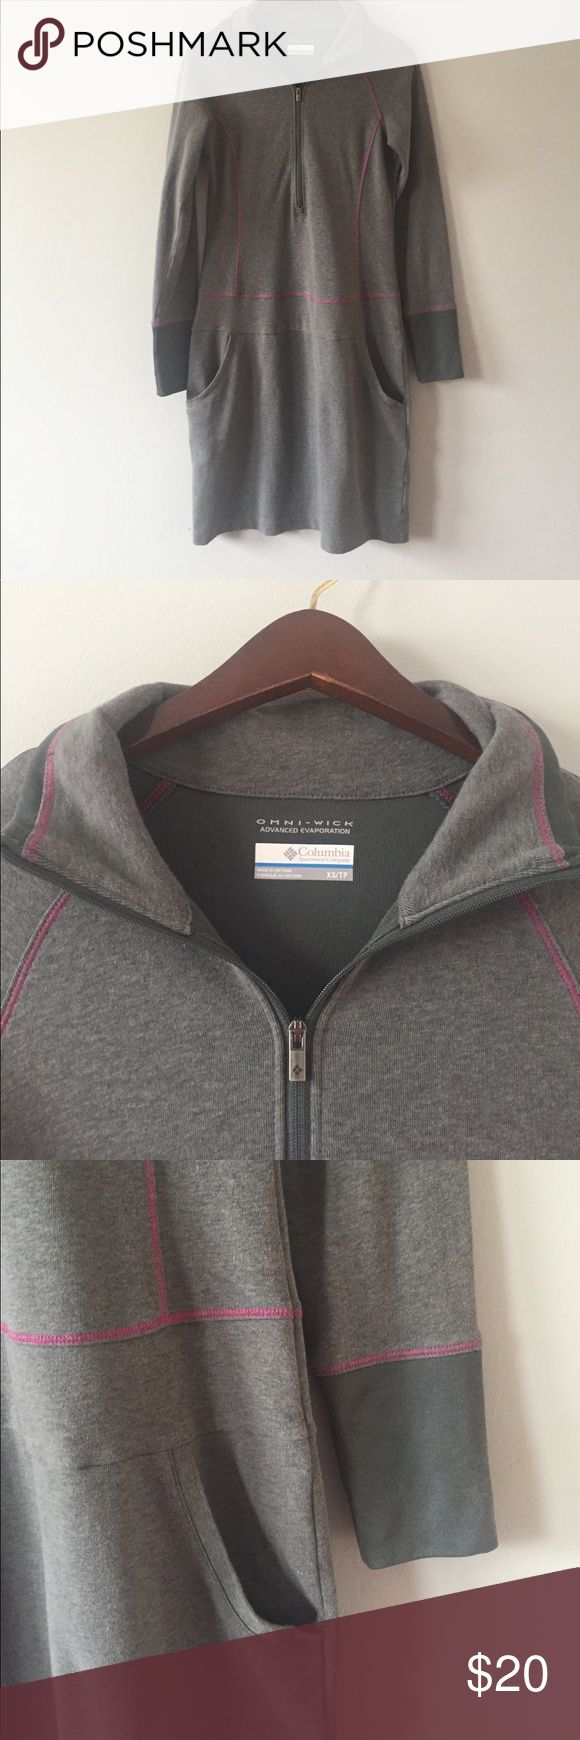 columbia sportswear dress size XS excellent condition columbia sportswear dress size XS. grayish green color with magenta details. half zip with pockets. bundle with other items for an even deeper discount. Columbia Dresses